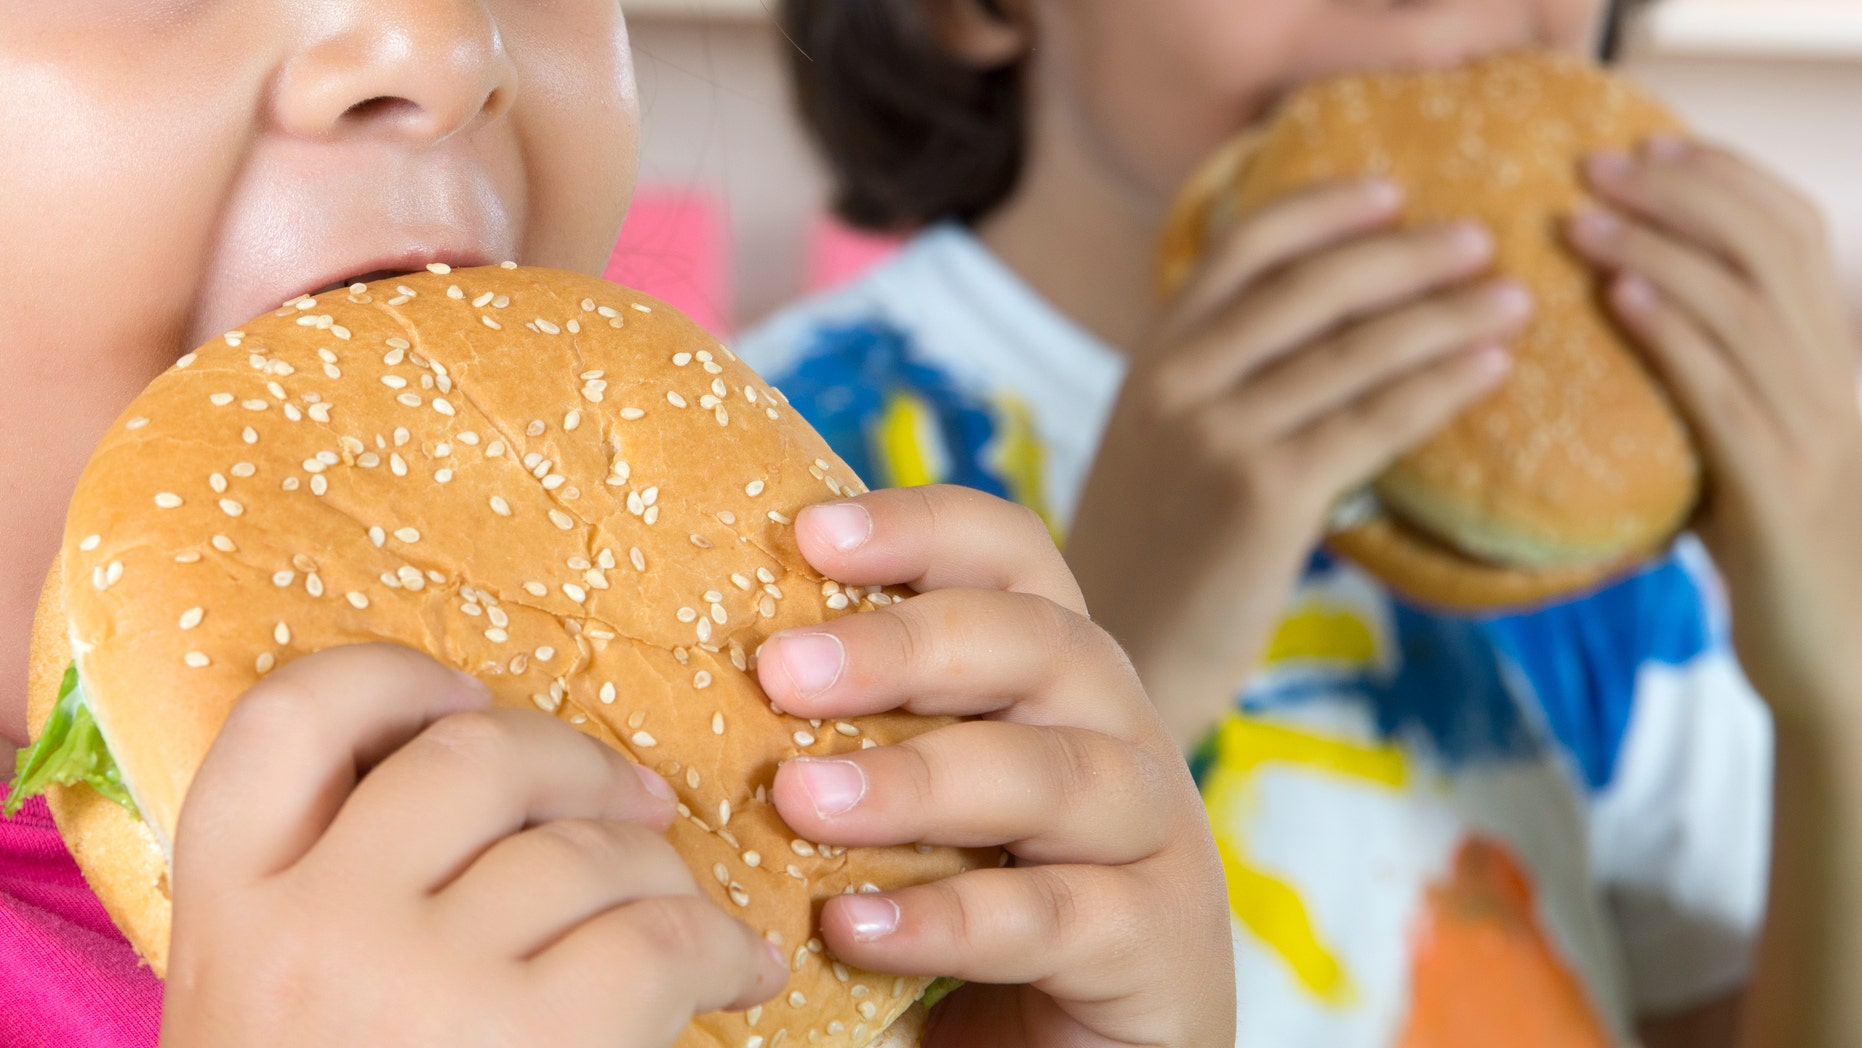 Fast foods less healthy now than 30 years ago